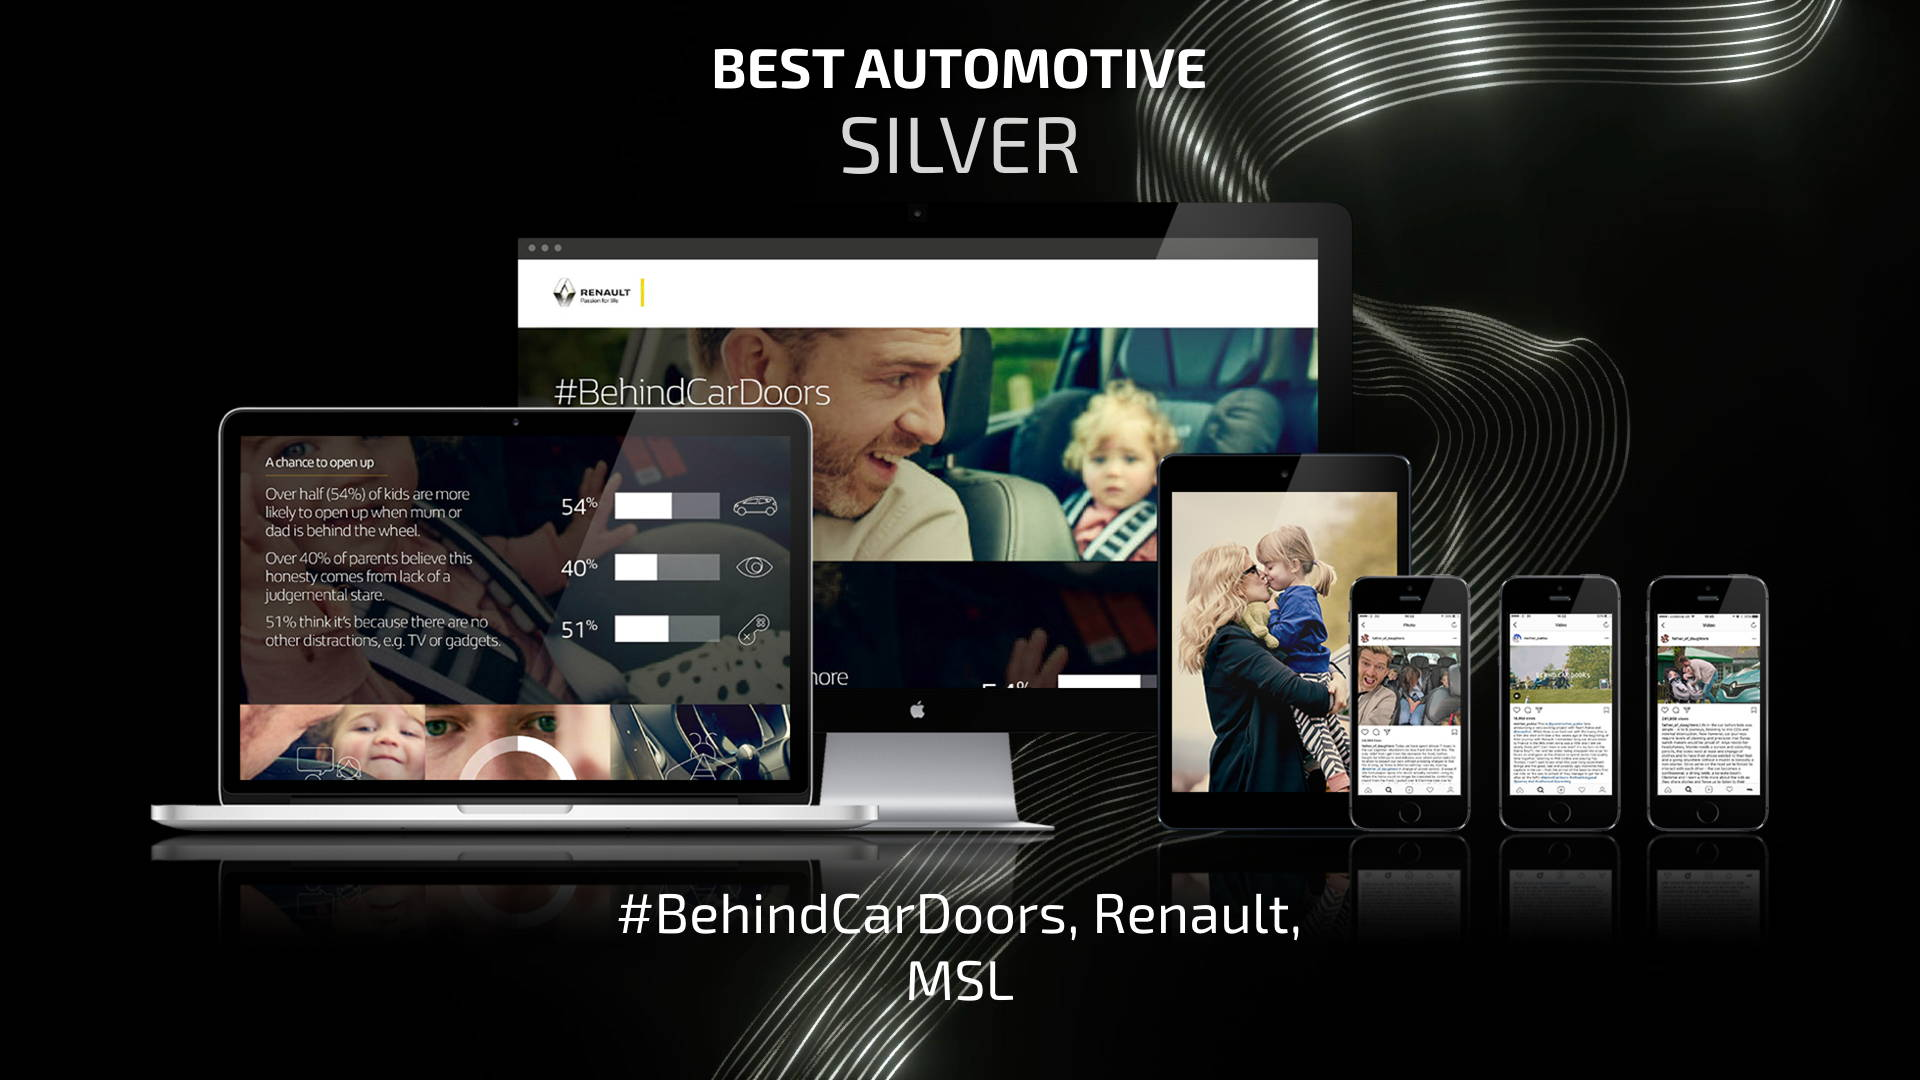 Best Automotive - Silver